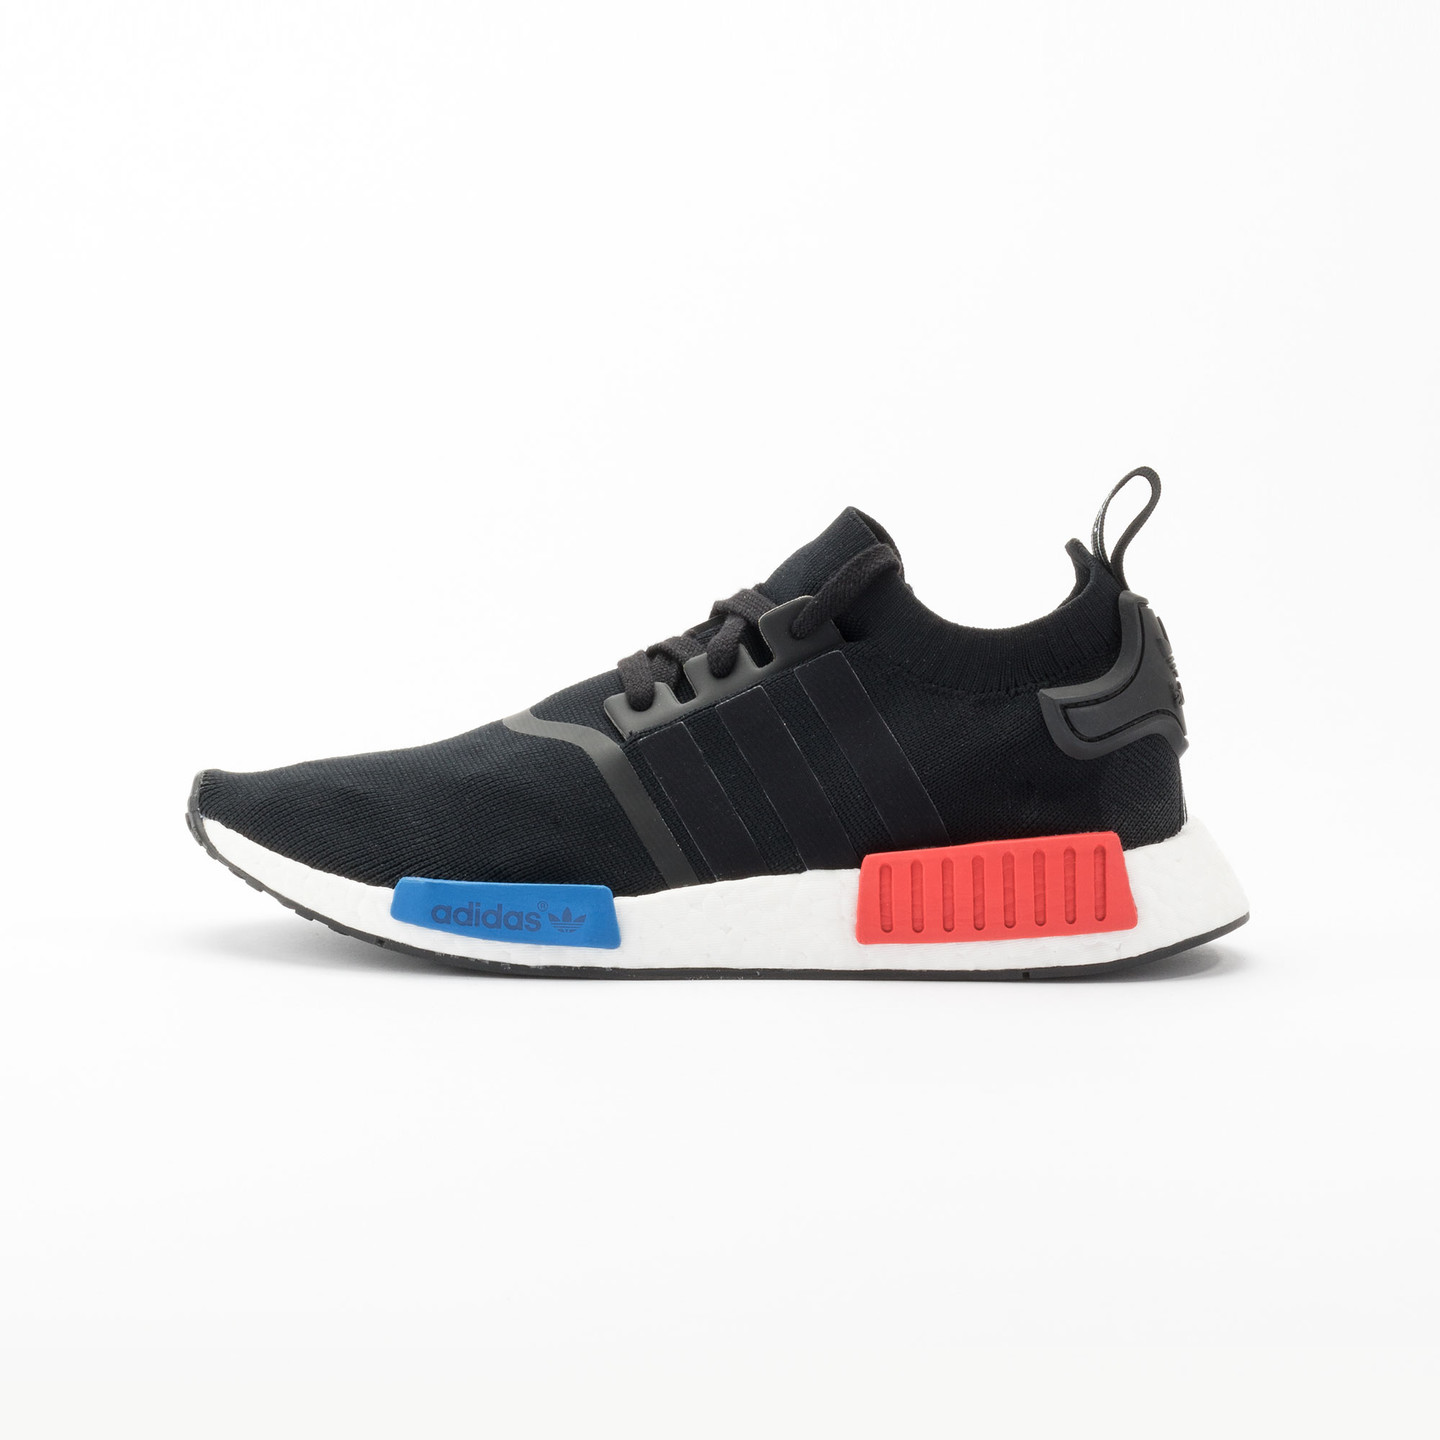 Adidas NMD Runner PK Primeknit Black / Red / Blue / White S79168-47.33